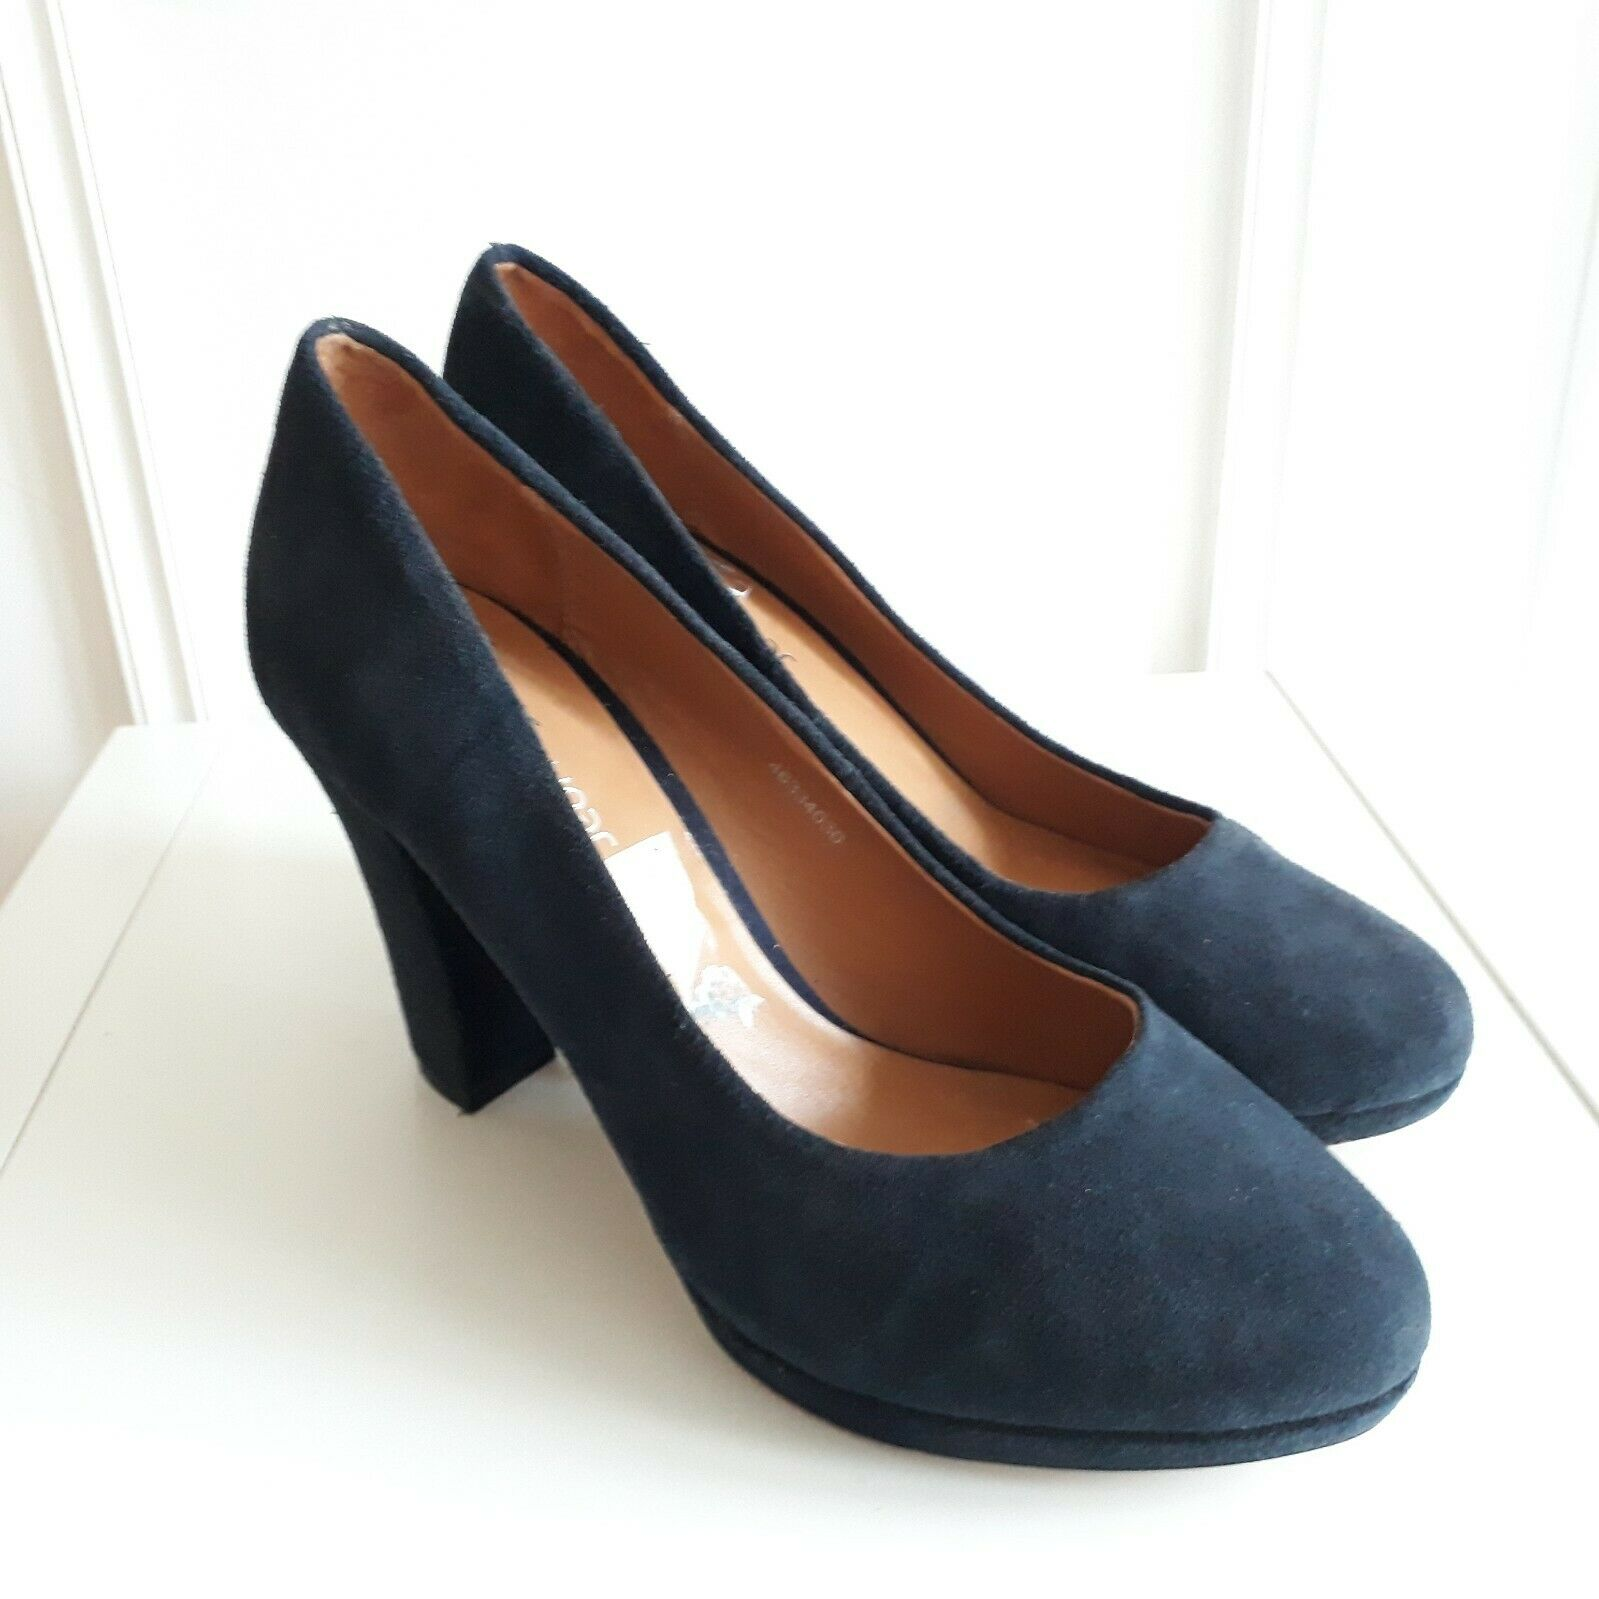 CLARKS Software chunky high heel bluee suede court shoes work office Sz  7   40